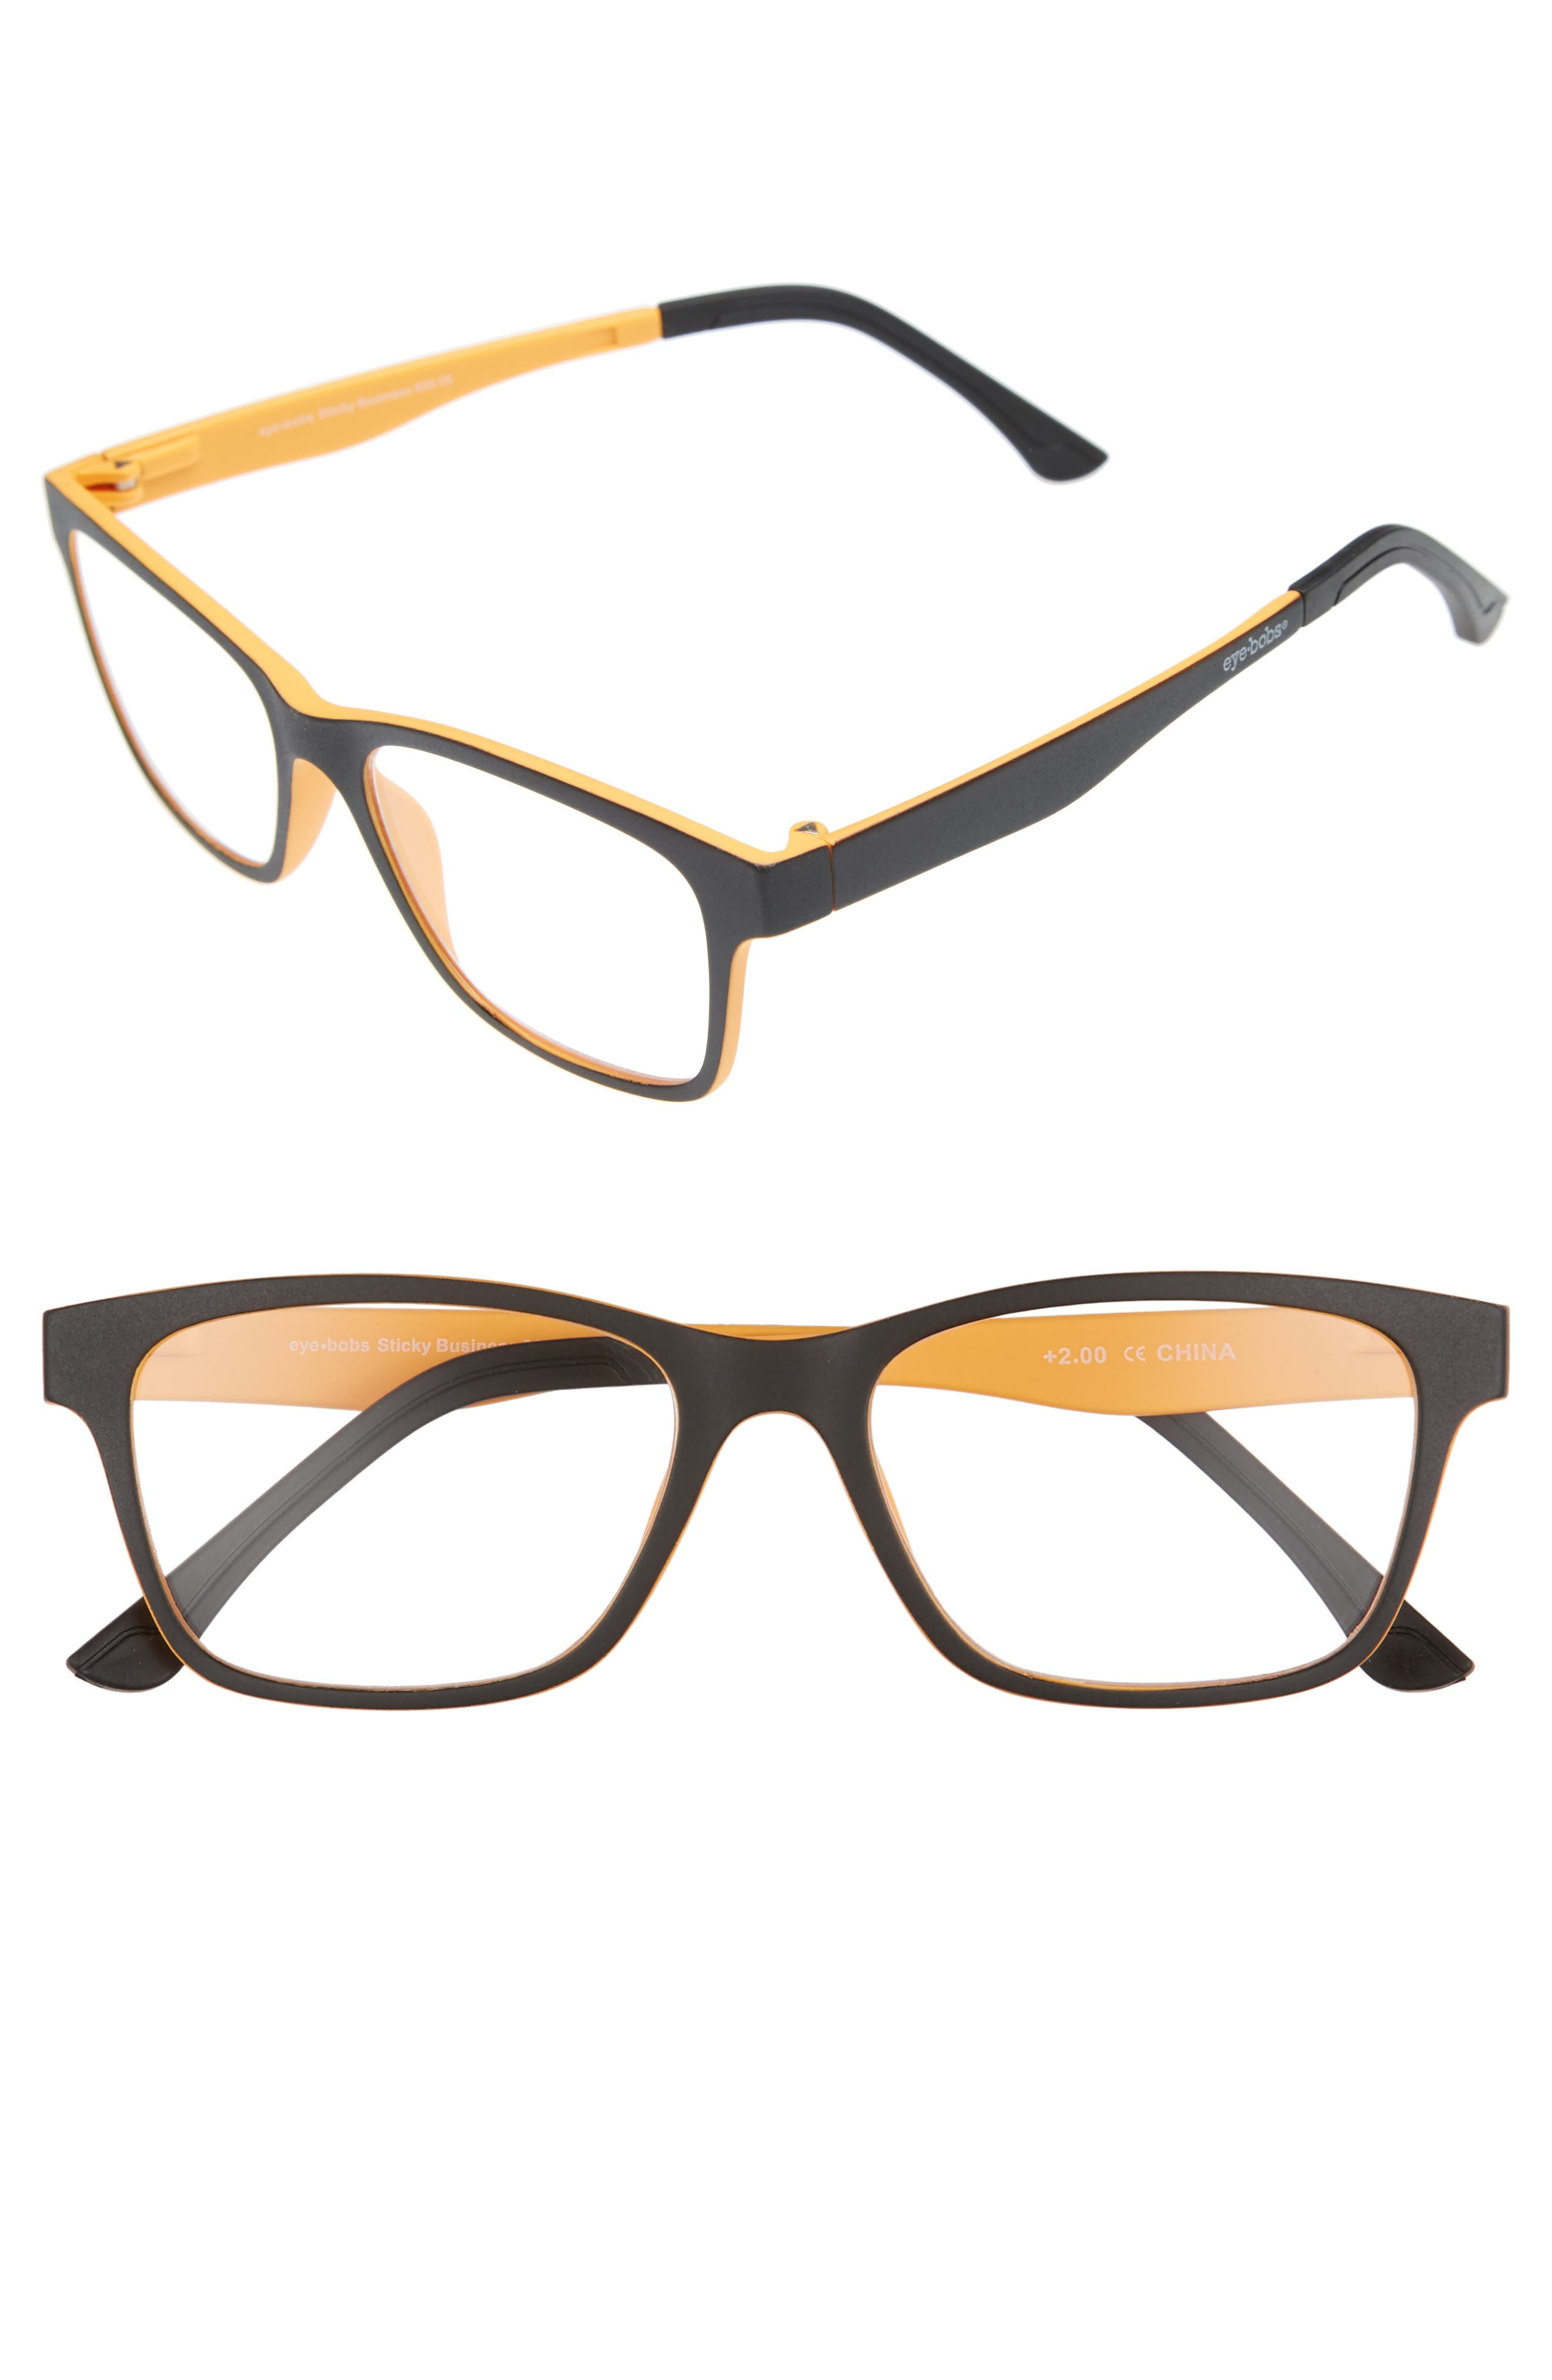 Sticky Business 52mm Reading Glasses with Polarized Sunglass Clip,                         Main,                         color, Black With Yellow